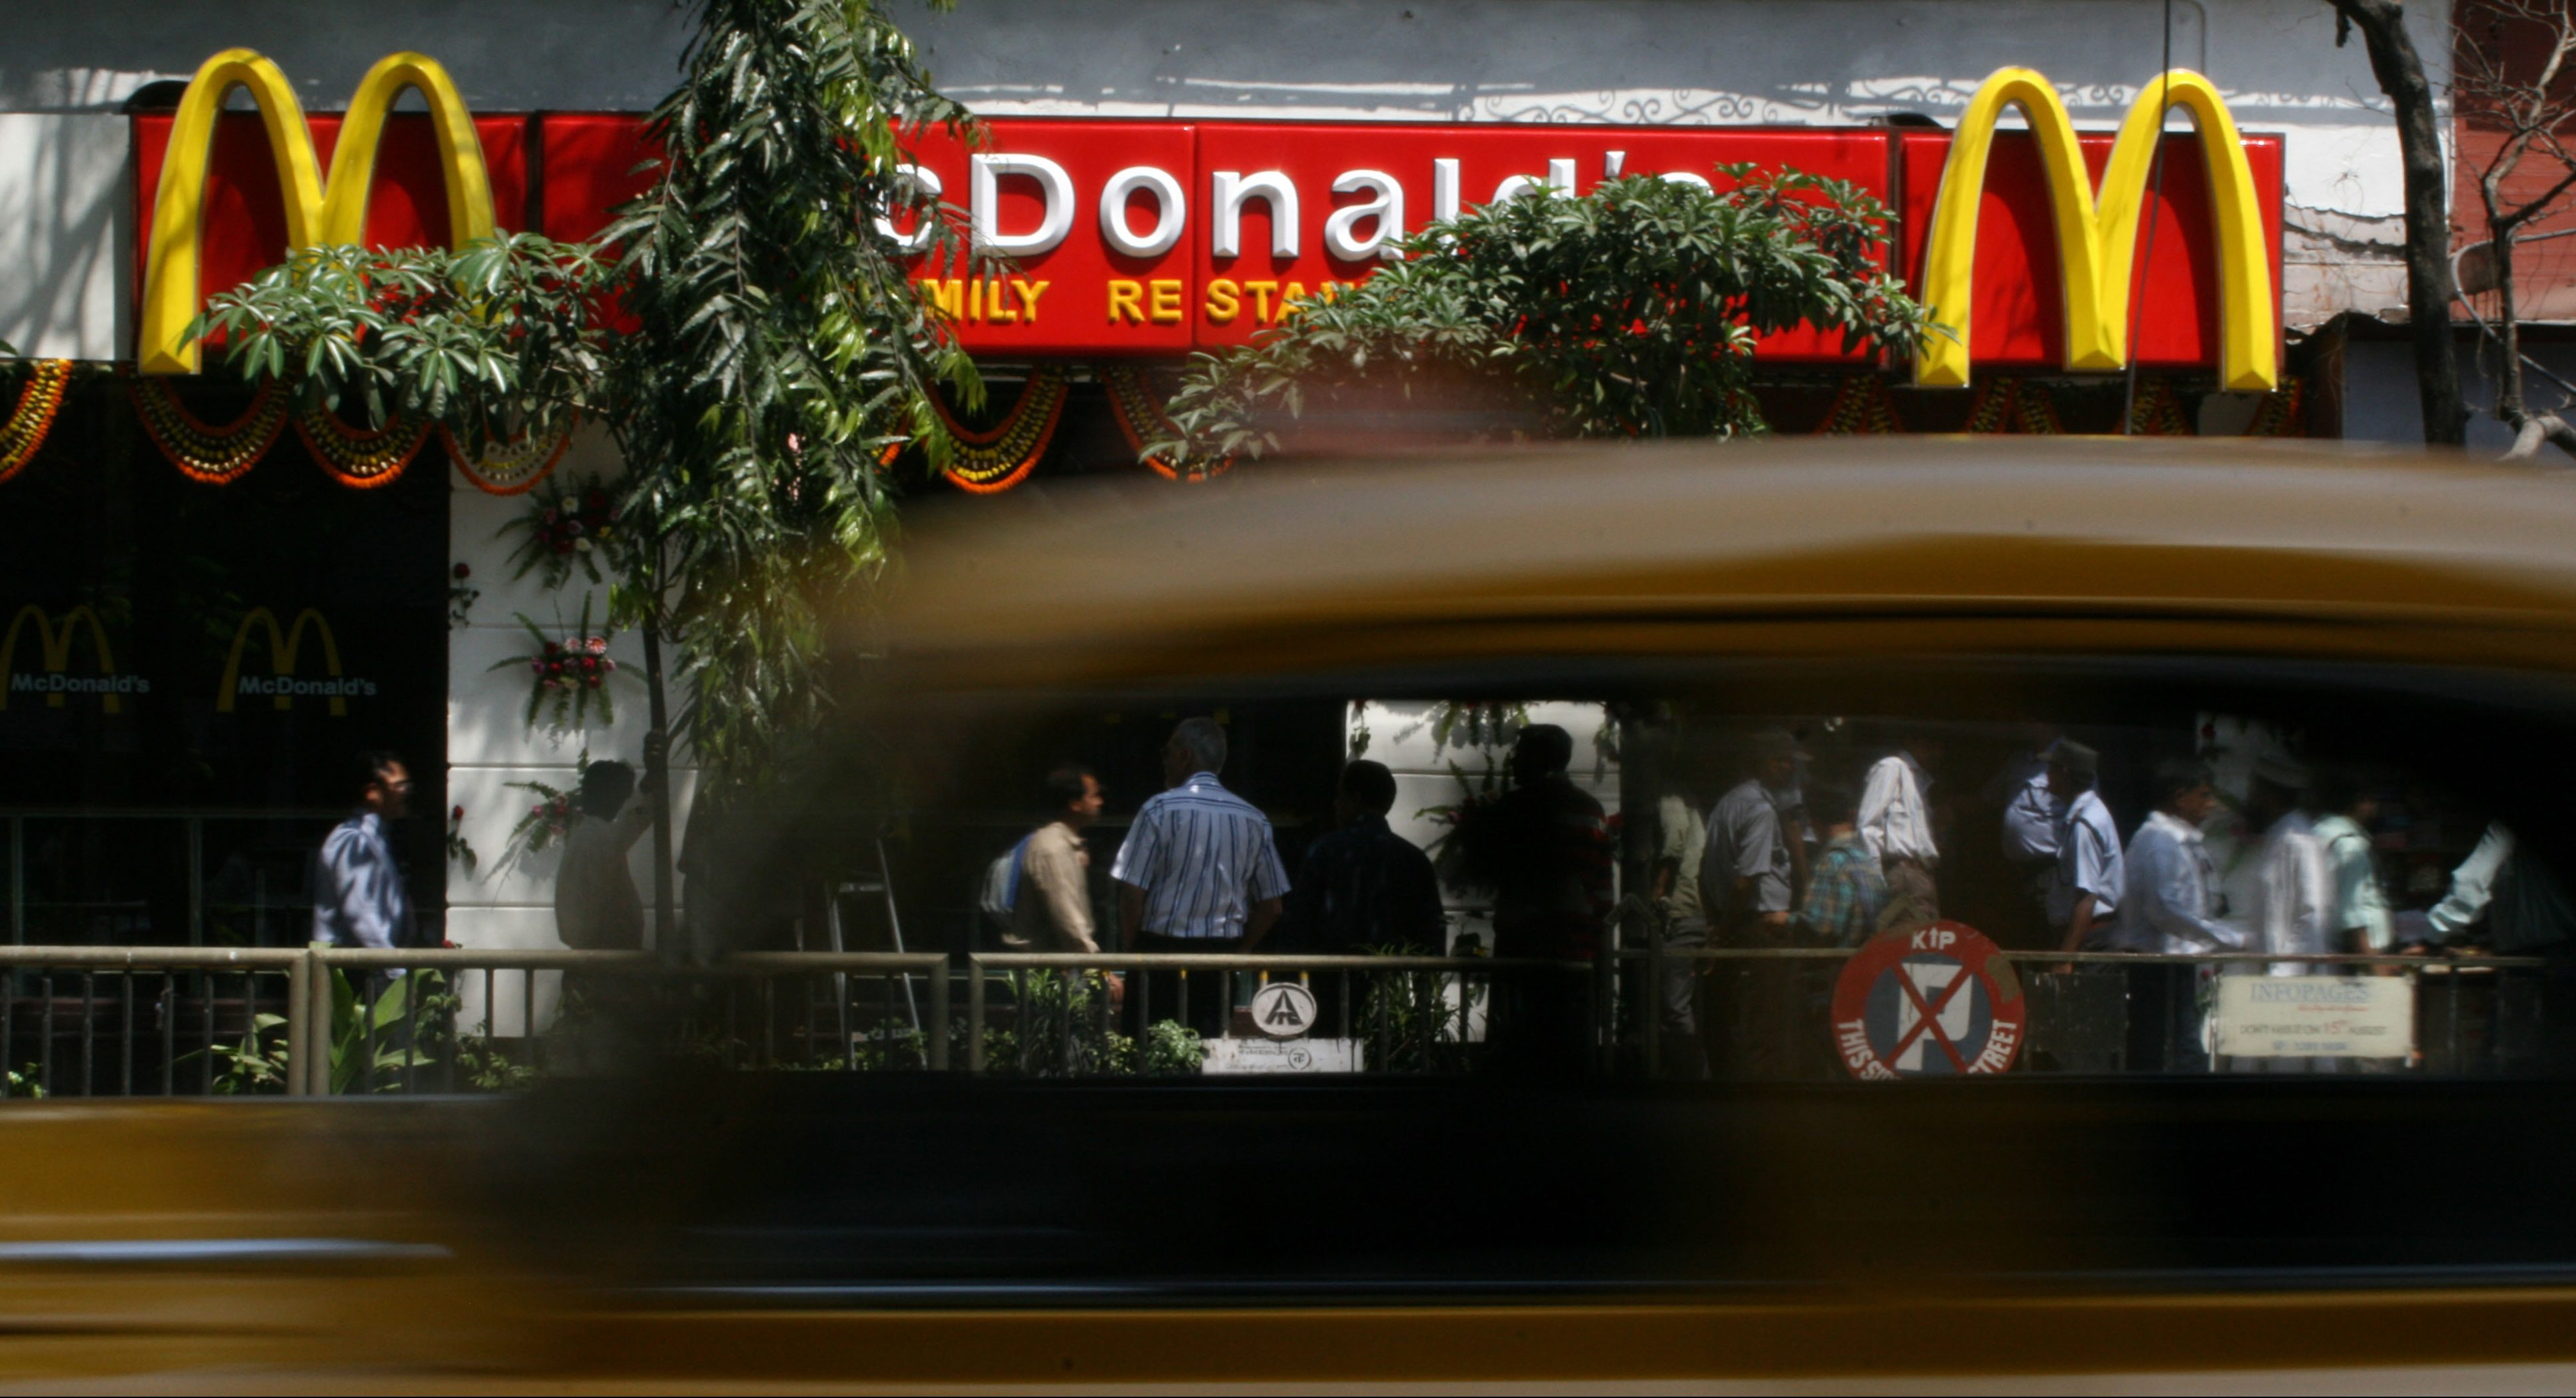 A car speeds past the McDonald's family restaurant in Calcutta, Thursday, March 8, 2007. By opening this first outlet in the eastern India, McDonald's announced plans to invest Rupees 100 crores (22.22 Million U S Dollars) n the region, according to a press release. (AP Photo/Bikas Das)